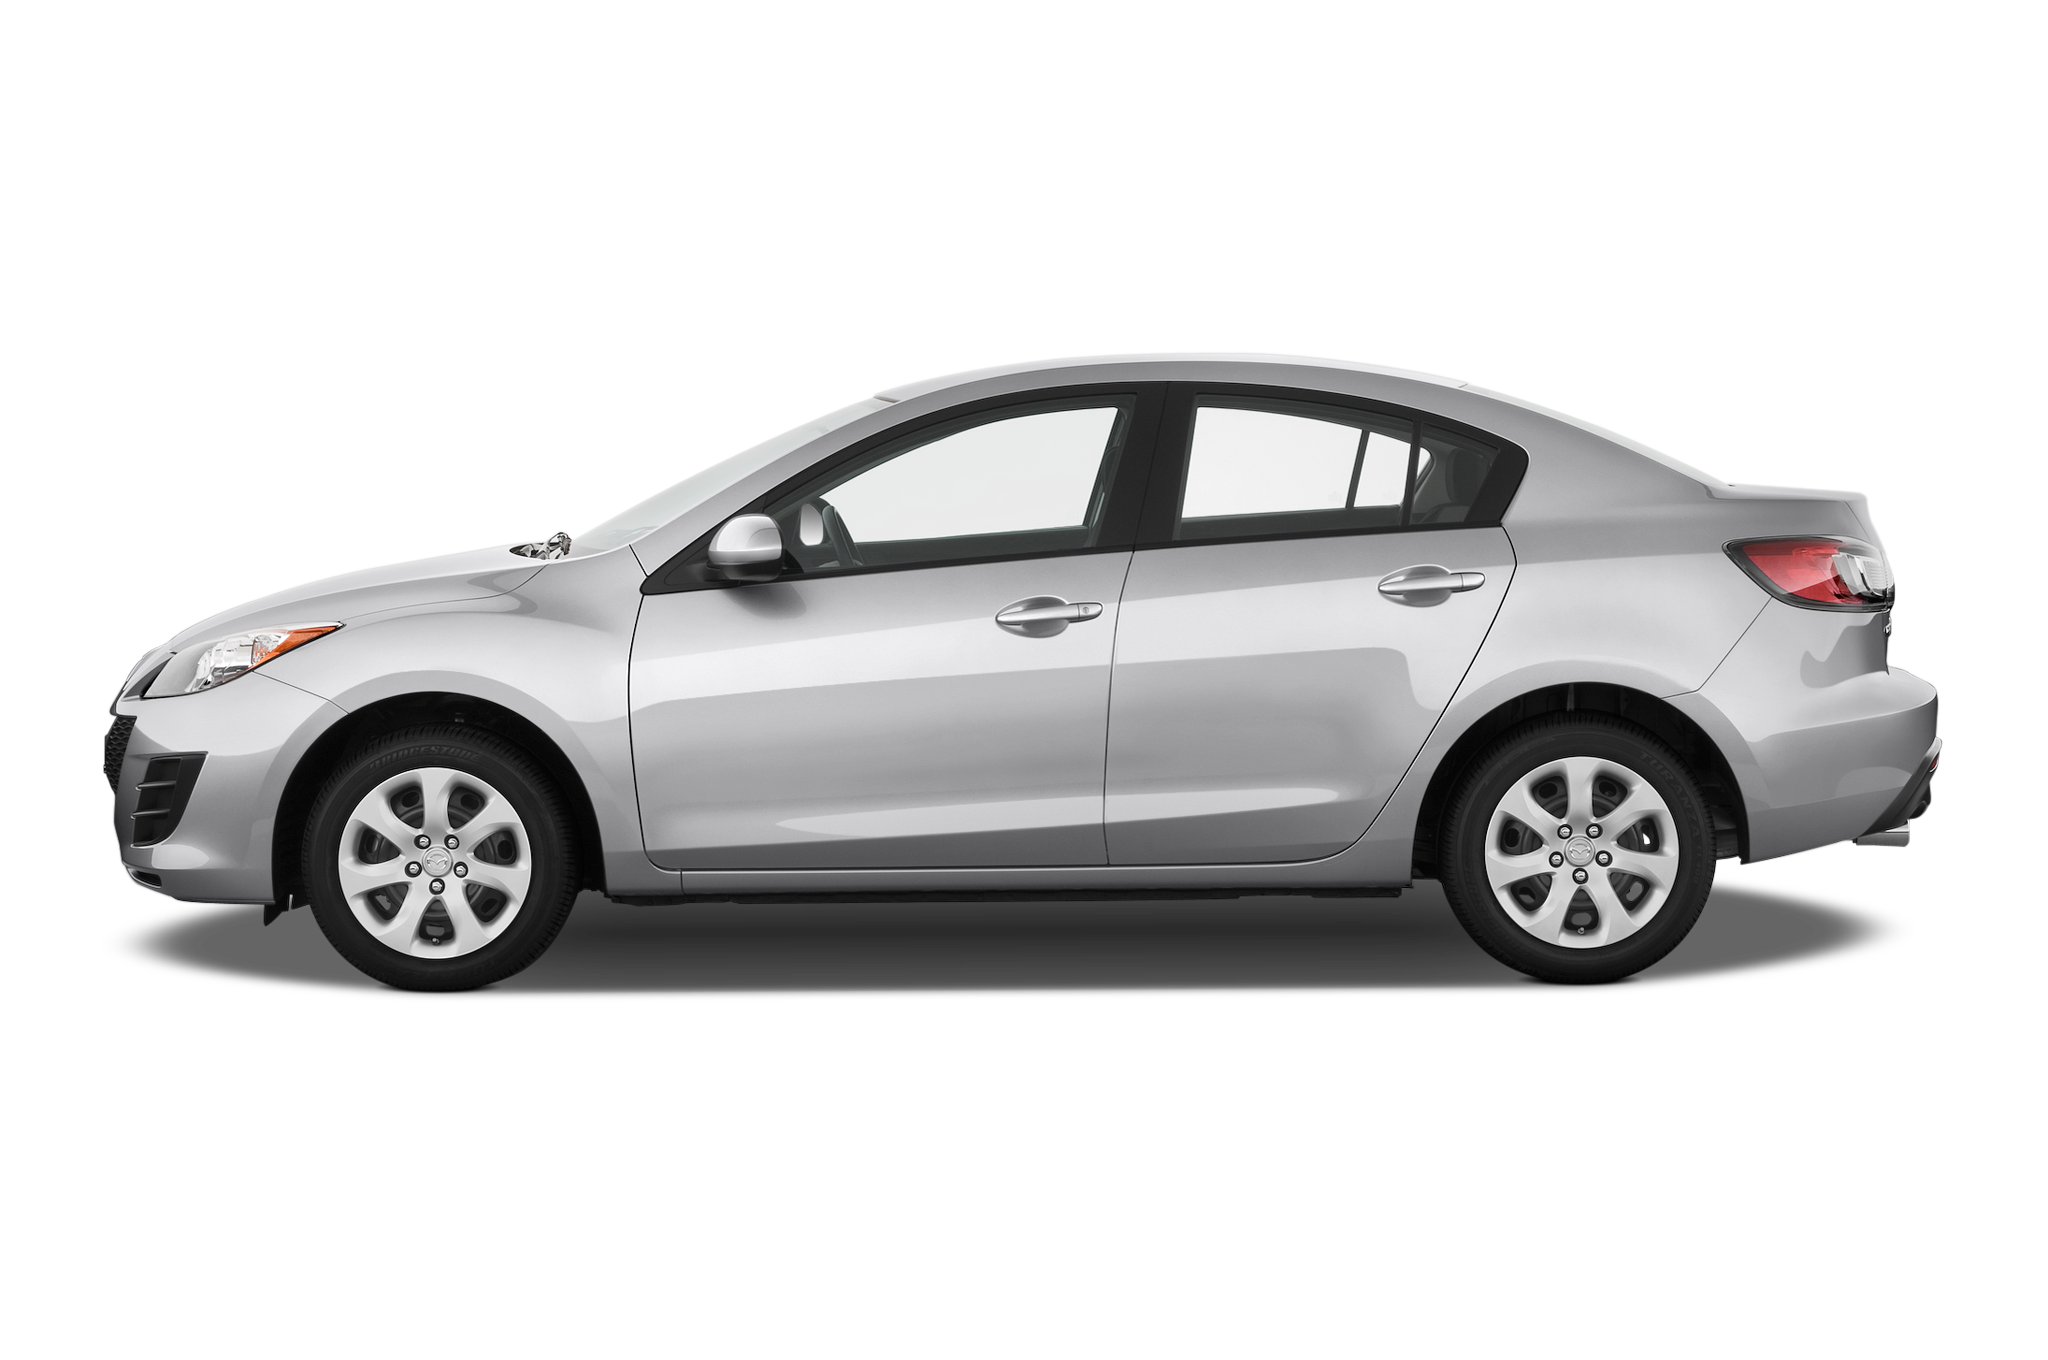 Used 2010 Mazda 3 for sale  Pricing amp Features  Edmunds